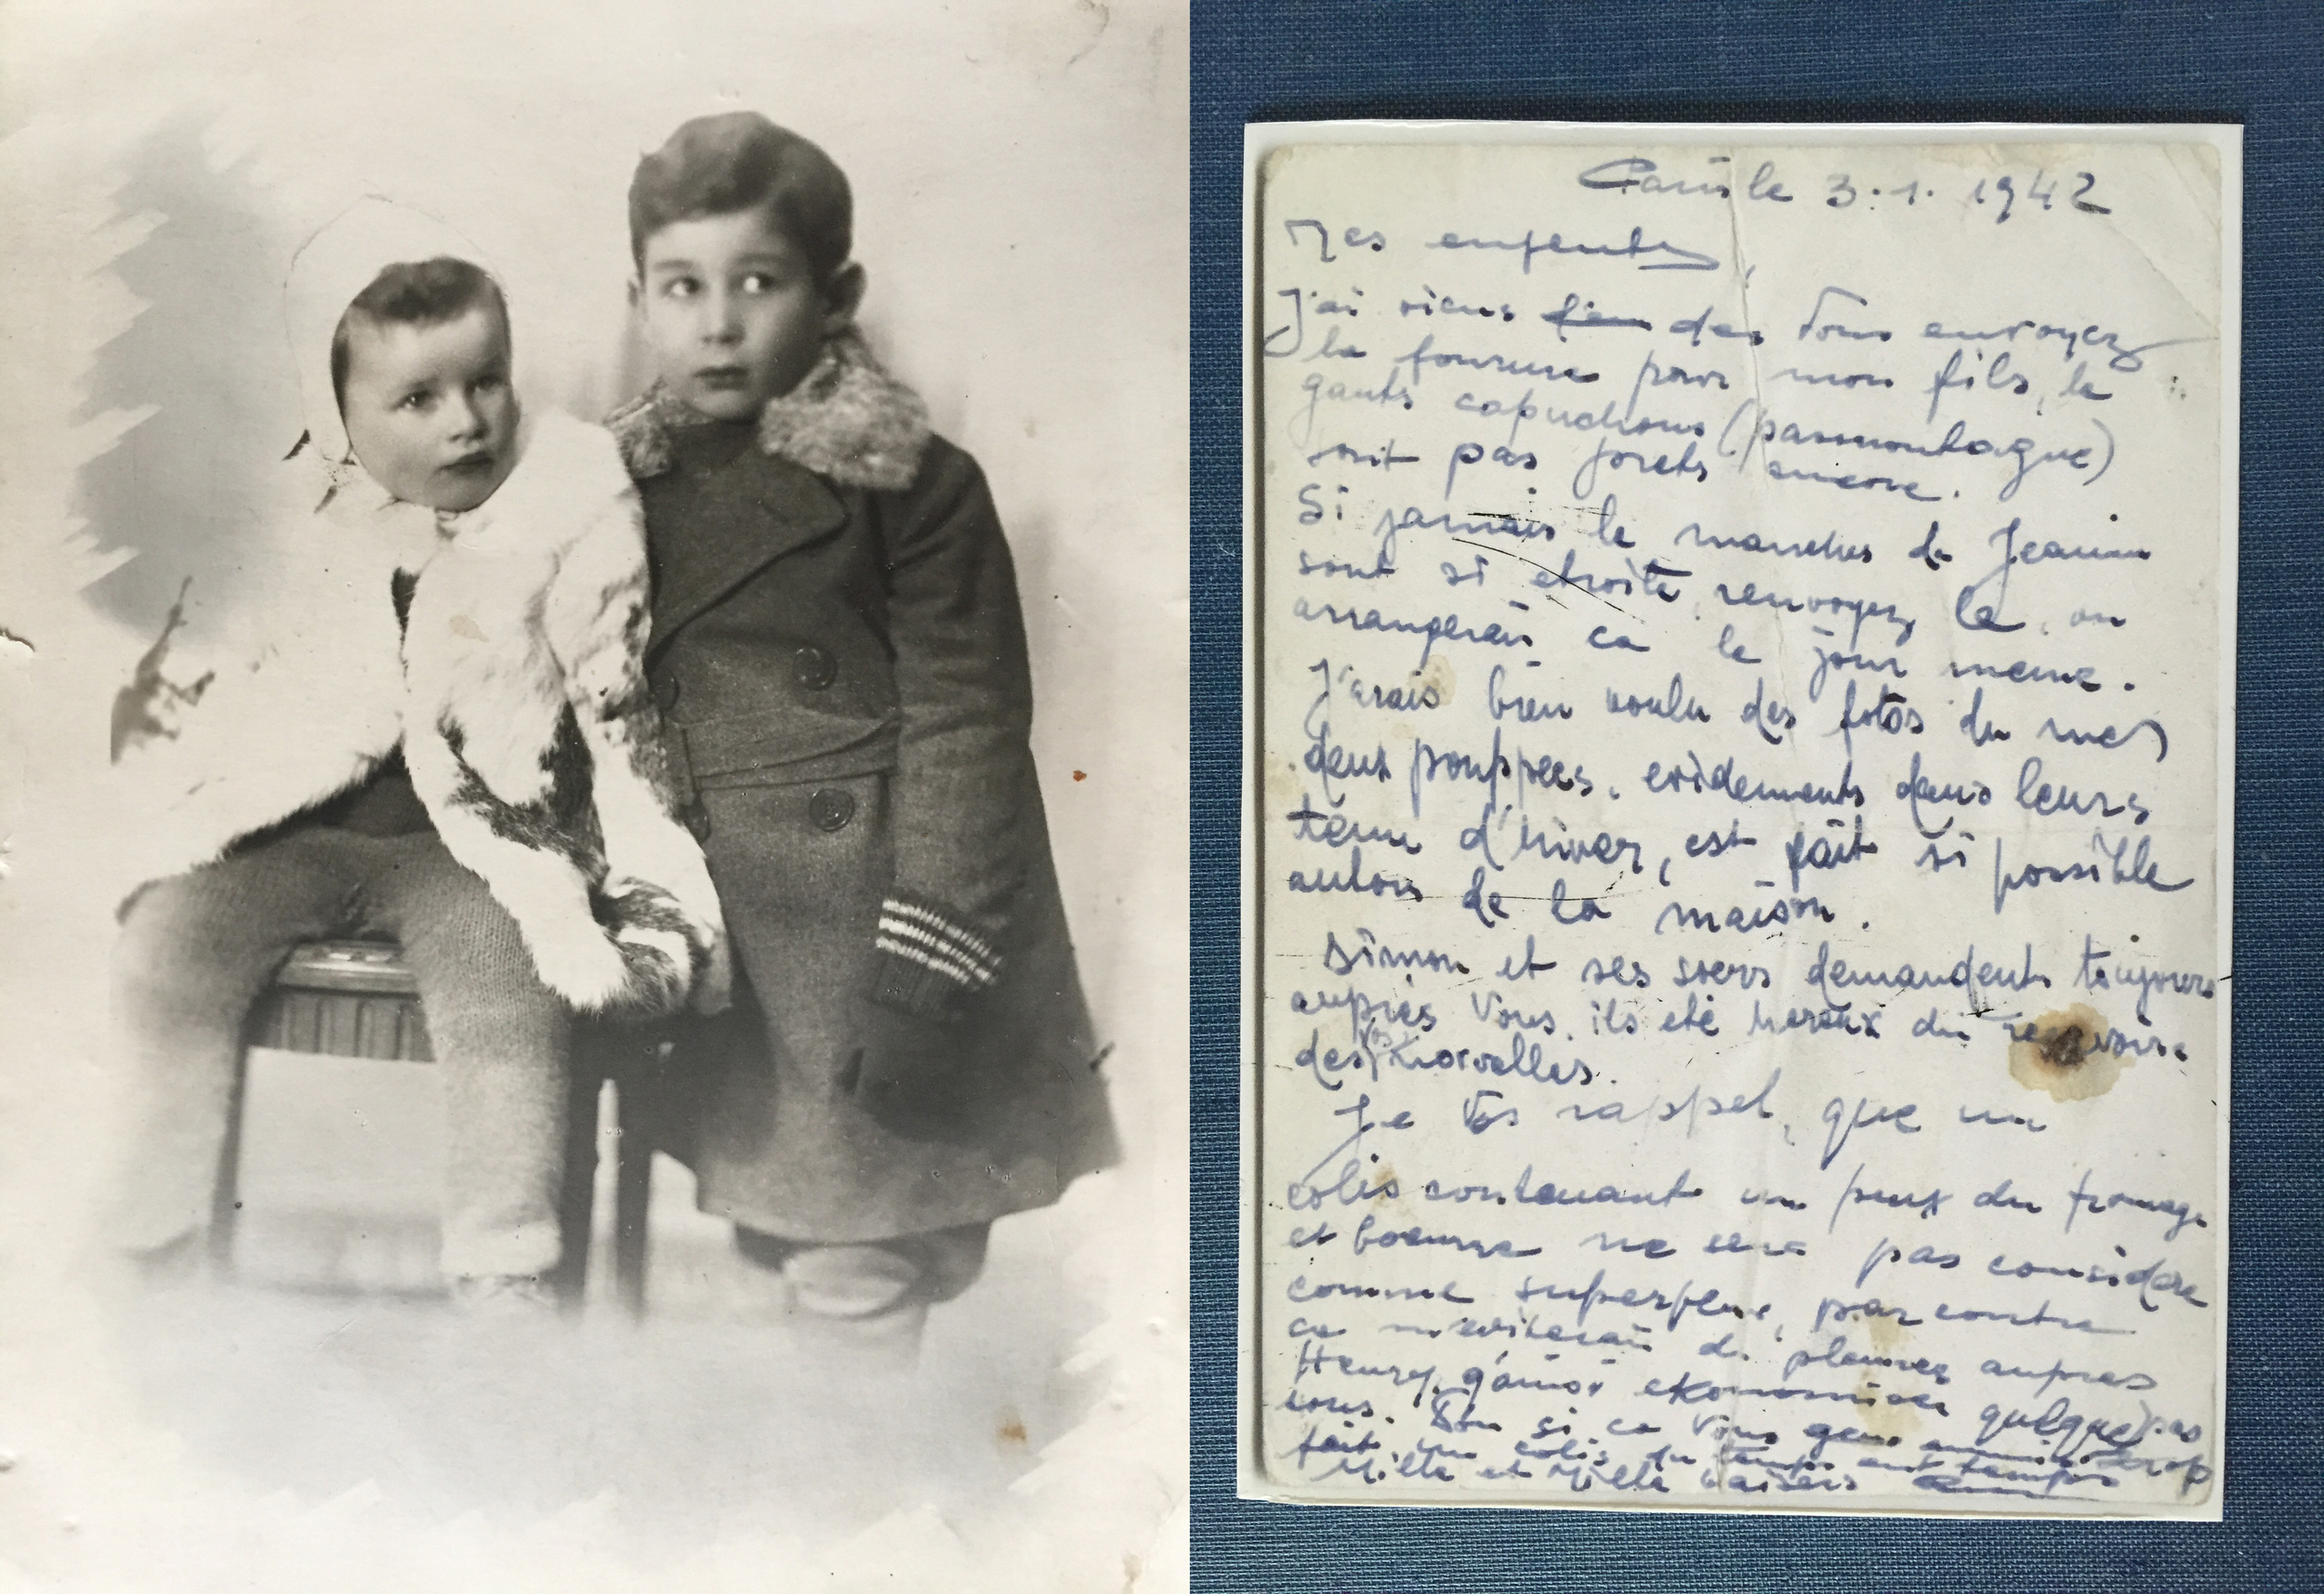 """A photograph of Janine and her brother Léon while they were in hiding as requested in the letter on the right from Janine's father, asking to see his """"babies"""" in the winter coats he had sent them. (Photos:Muriel Hasbun archive.)"""